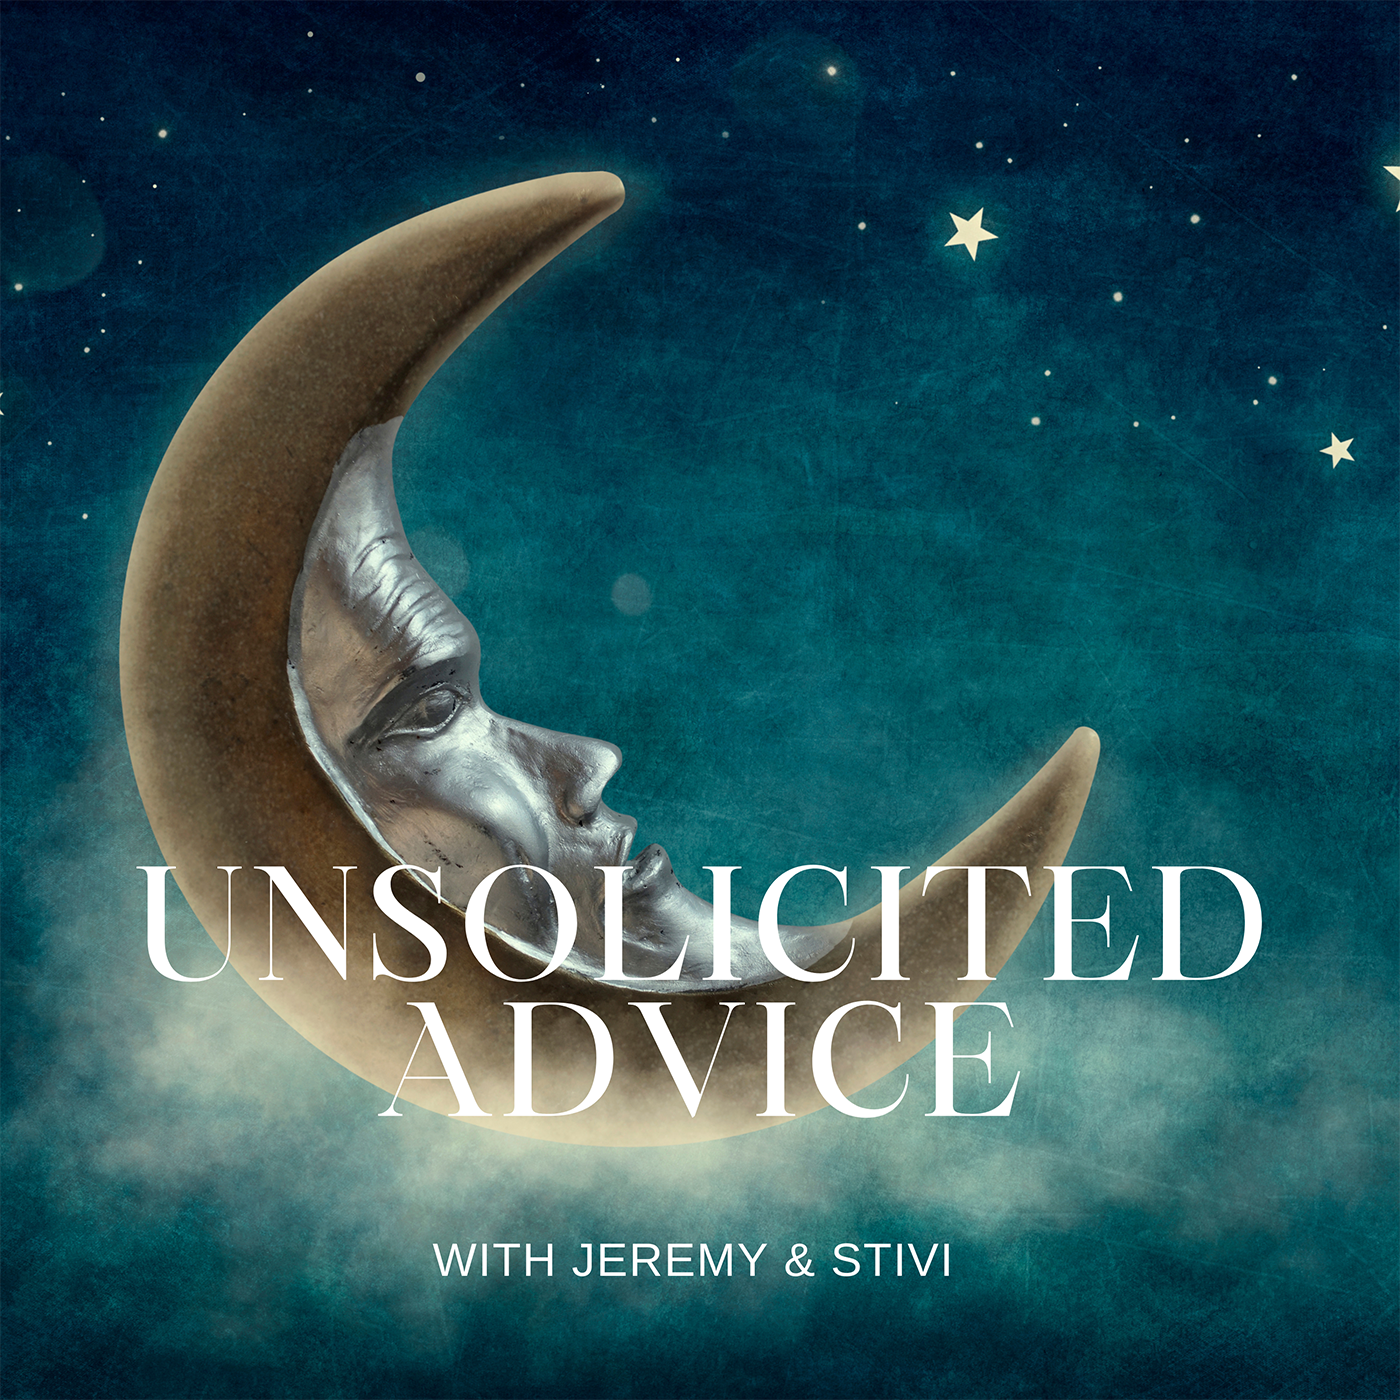 Unsolicited Advice with Jeremy and Stivi